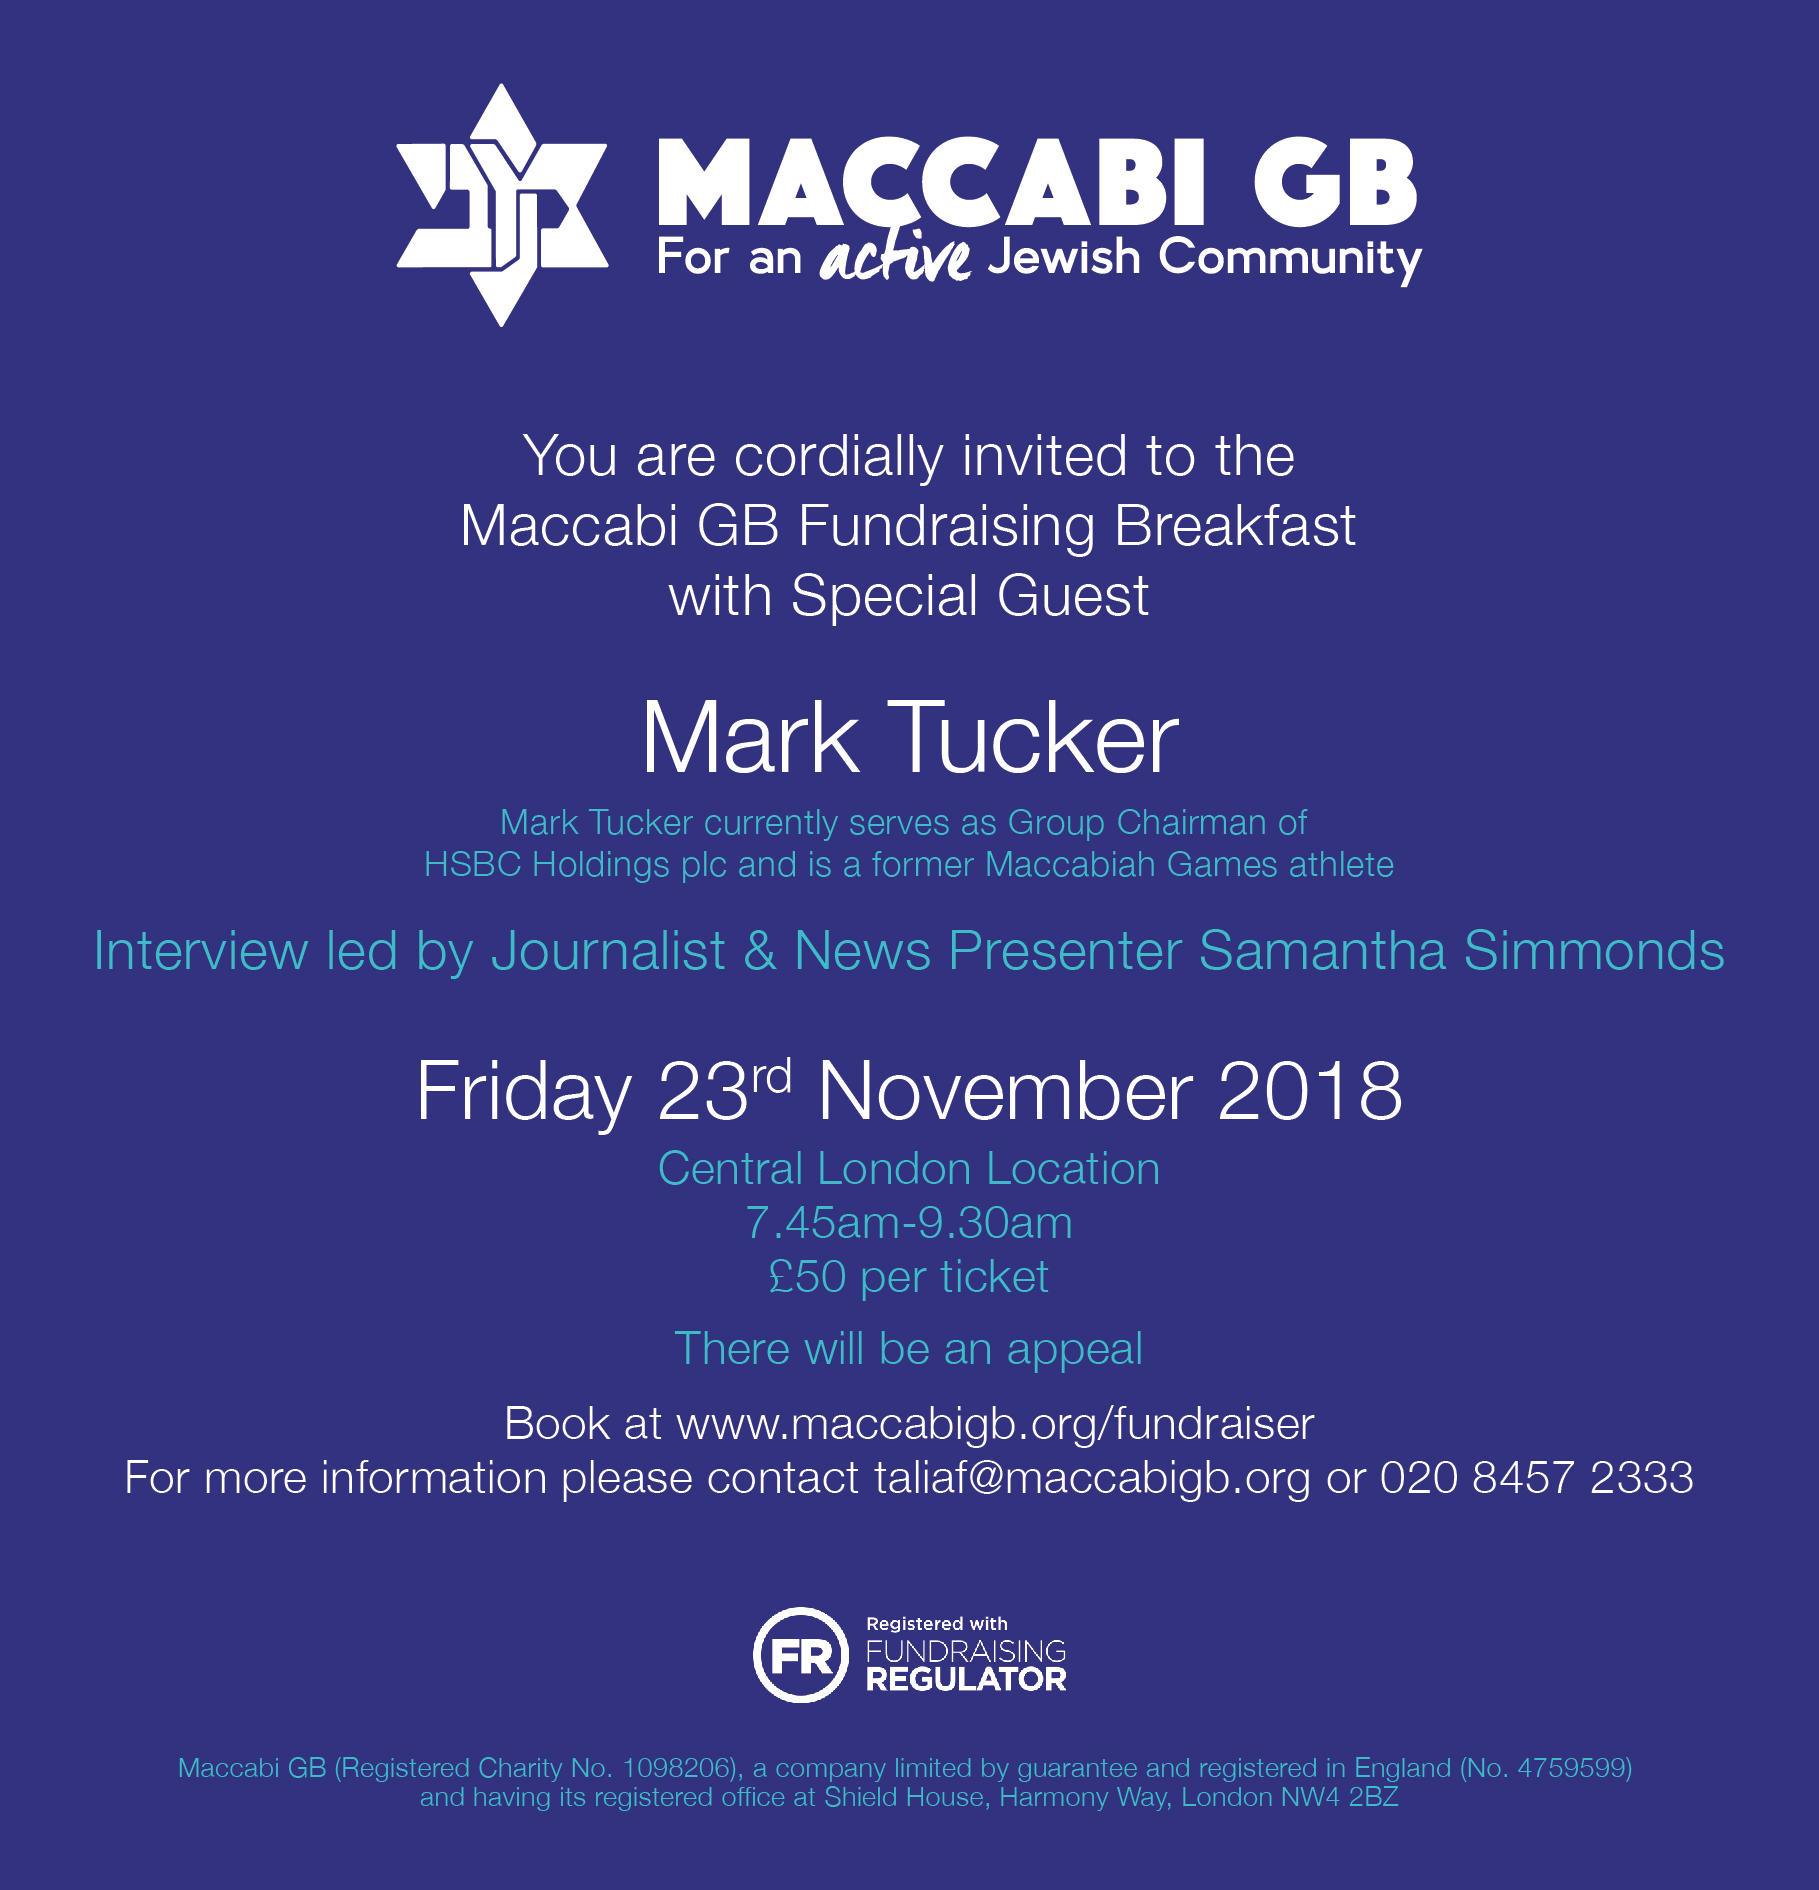 Maccabi GB Fundraising Breakfast with Mark Tucker